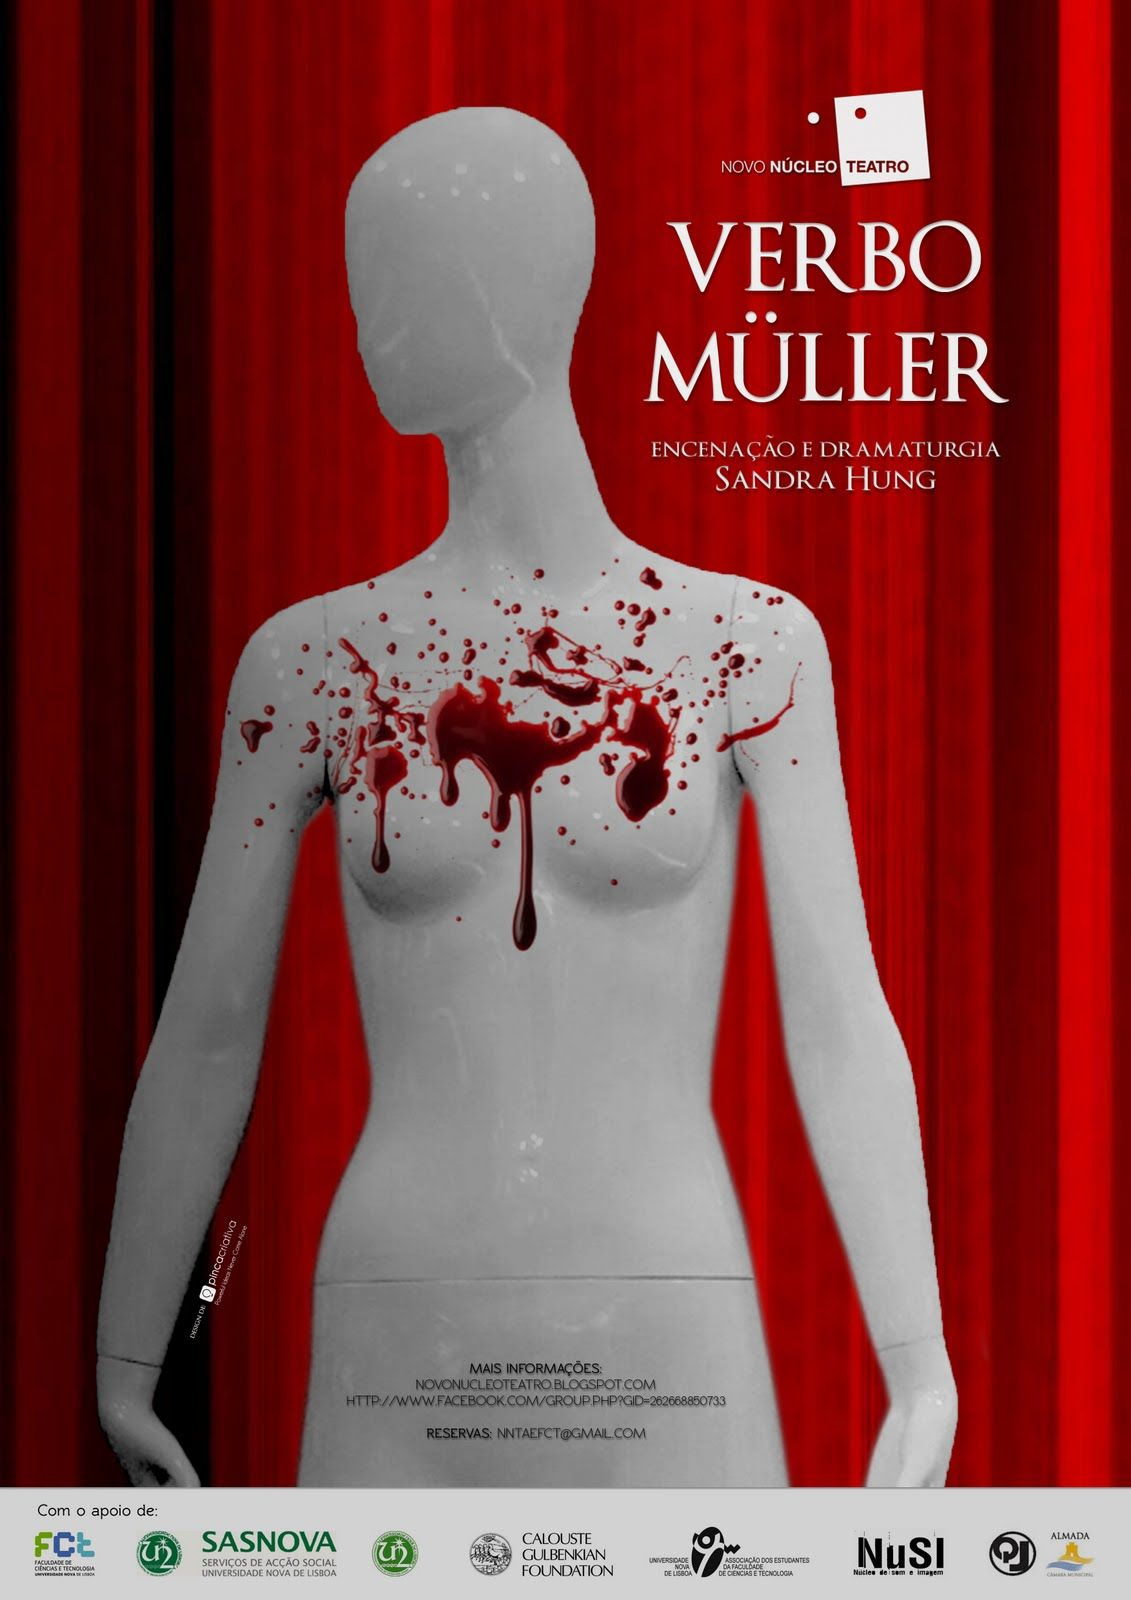 Verbo Muller (Theatre Play)